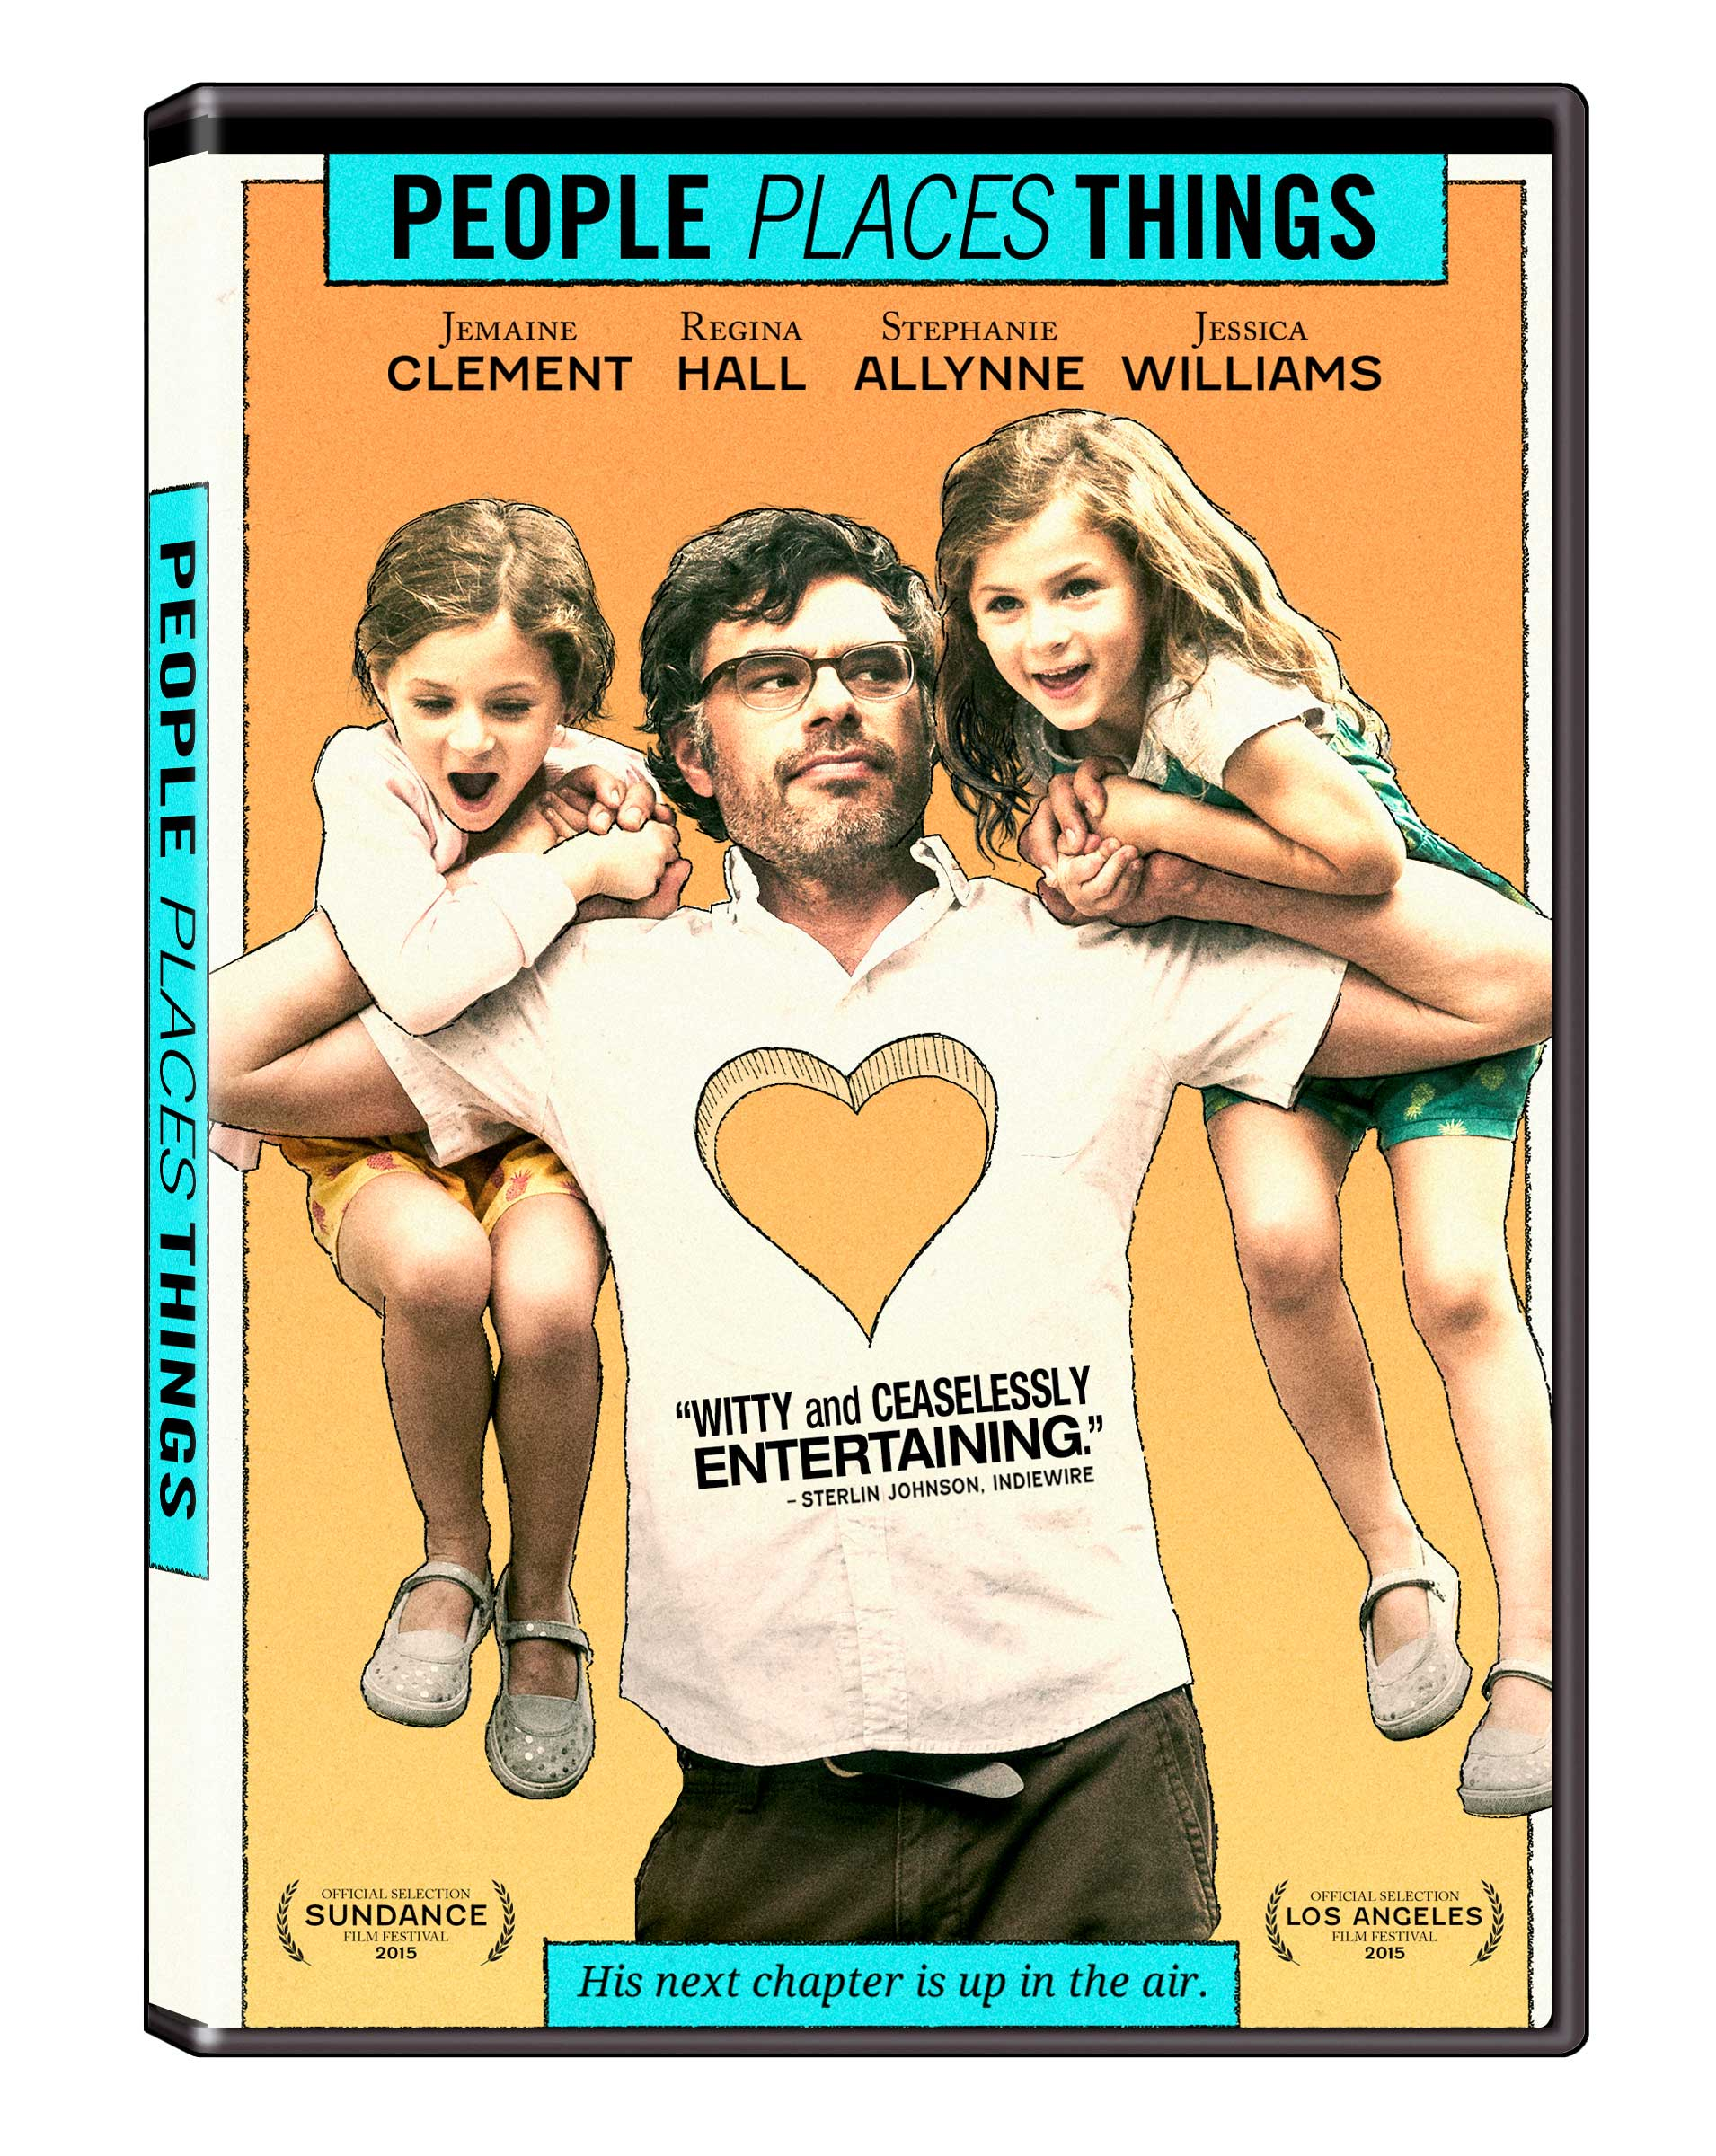 People Places Things DVD Review